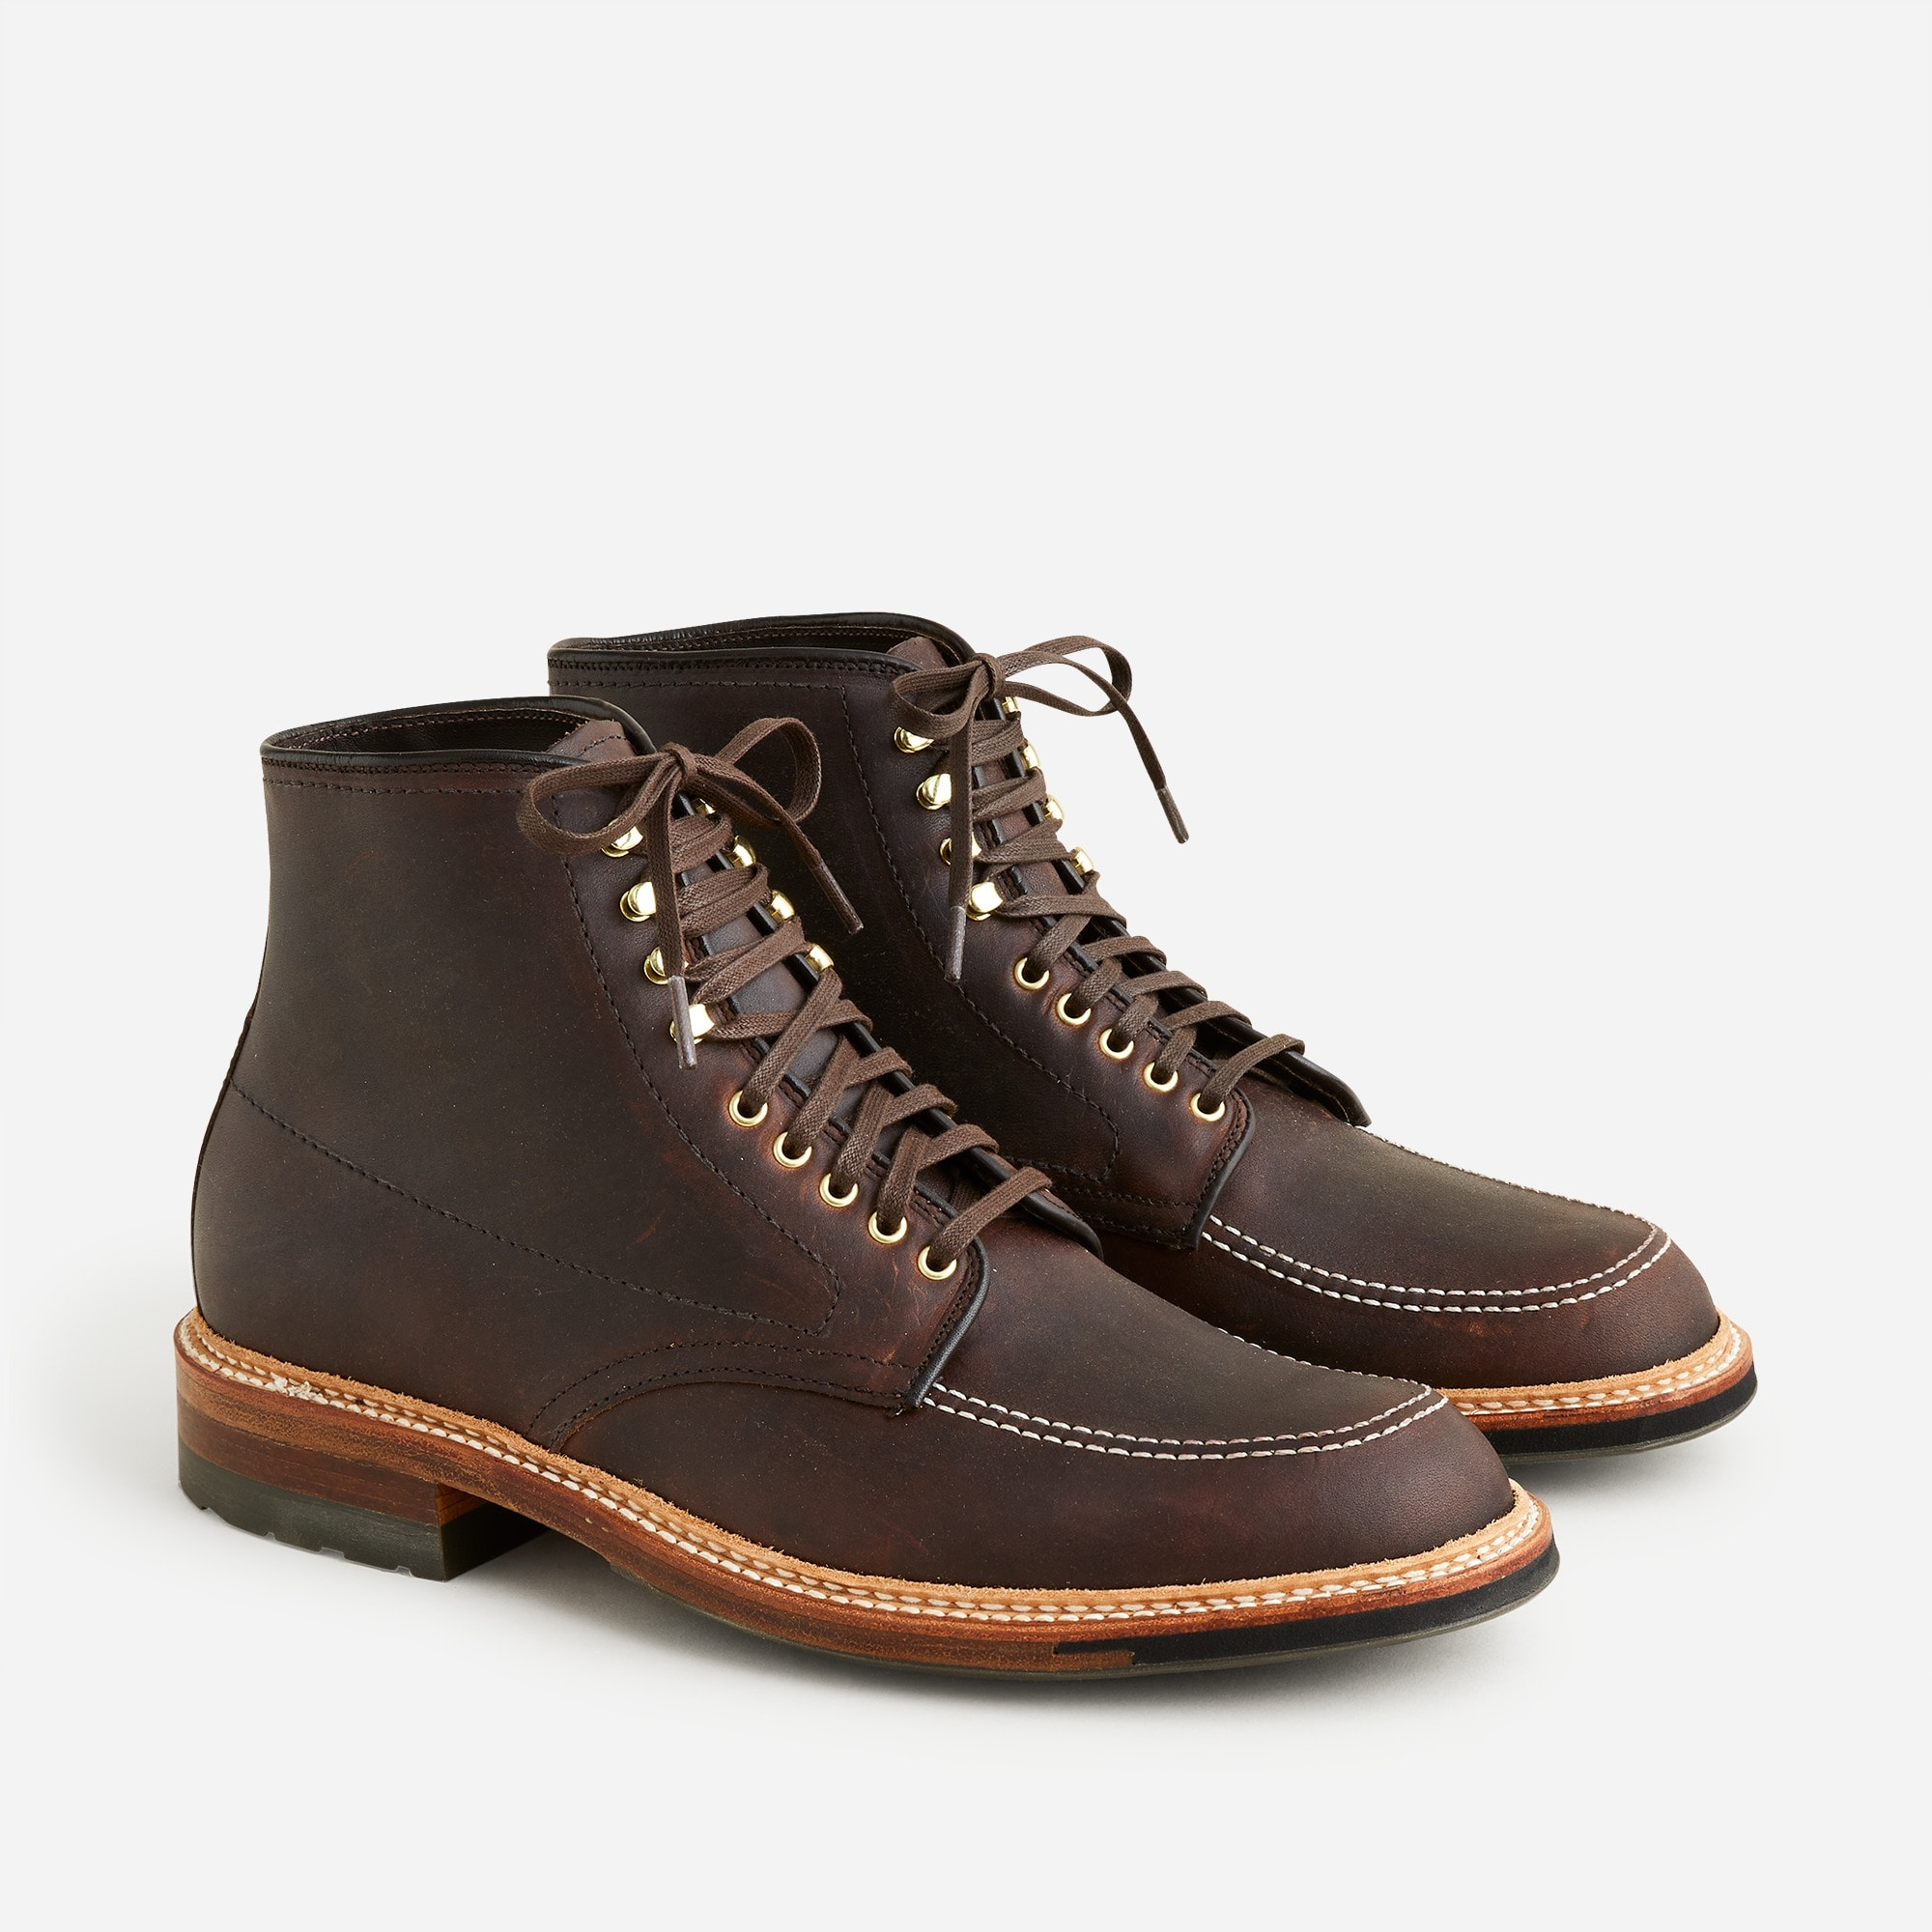 Alden® for J.Crew 405 Indy boots in kudu leather men j.crew in good company c